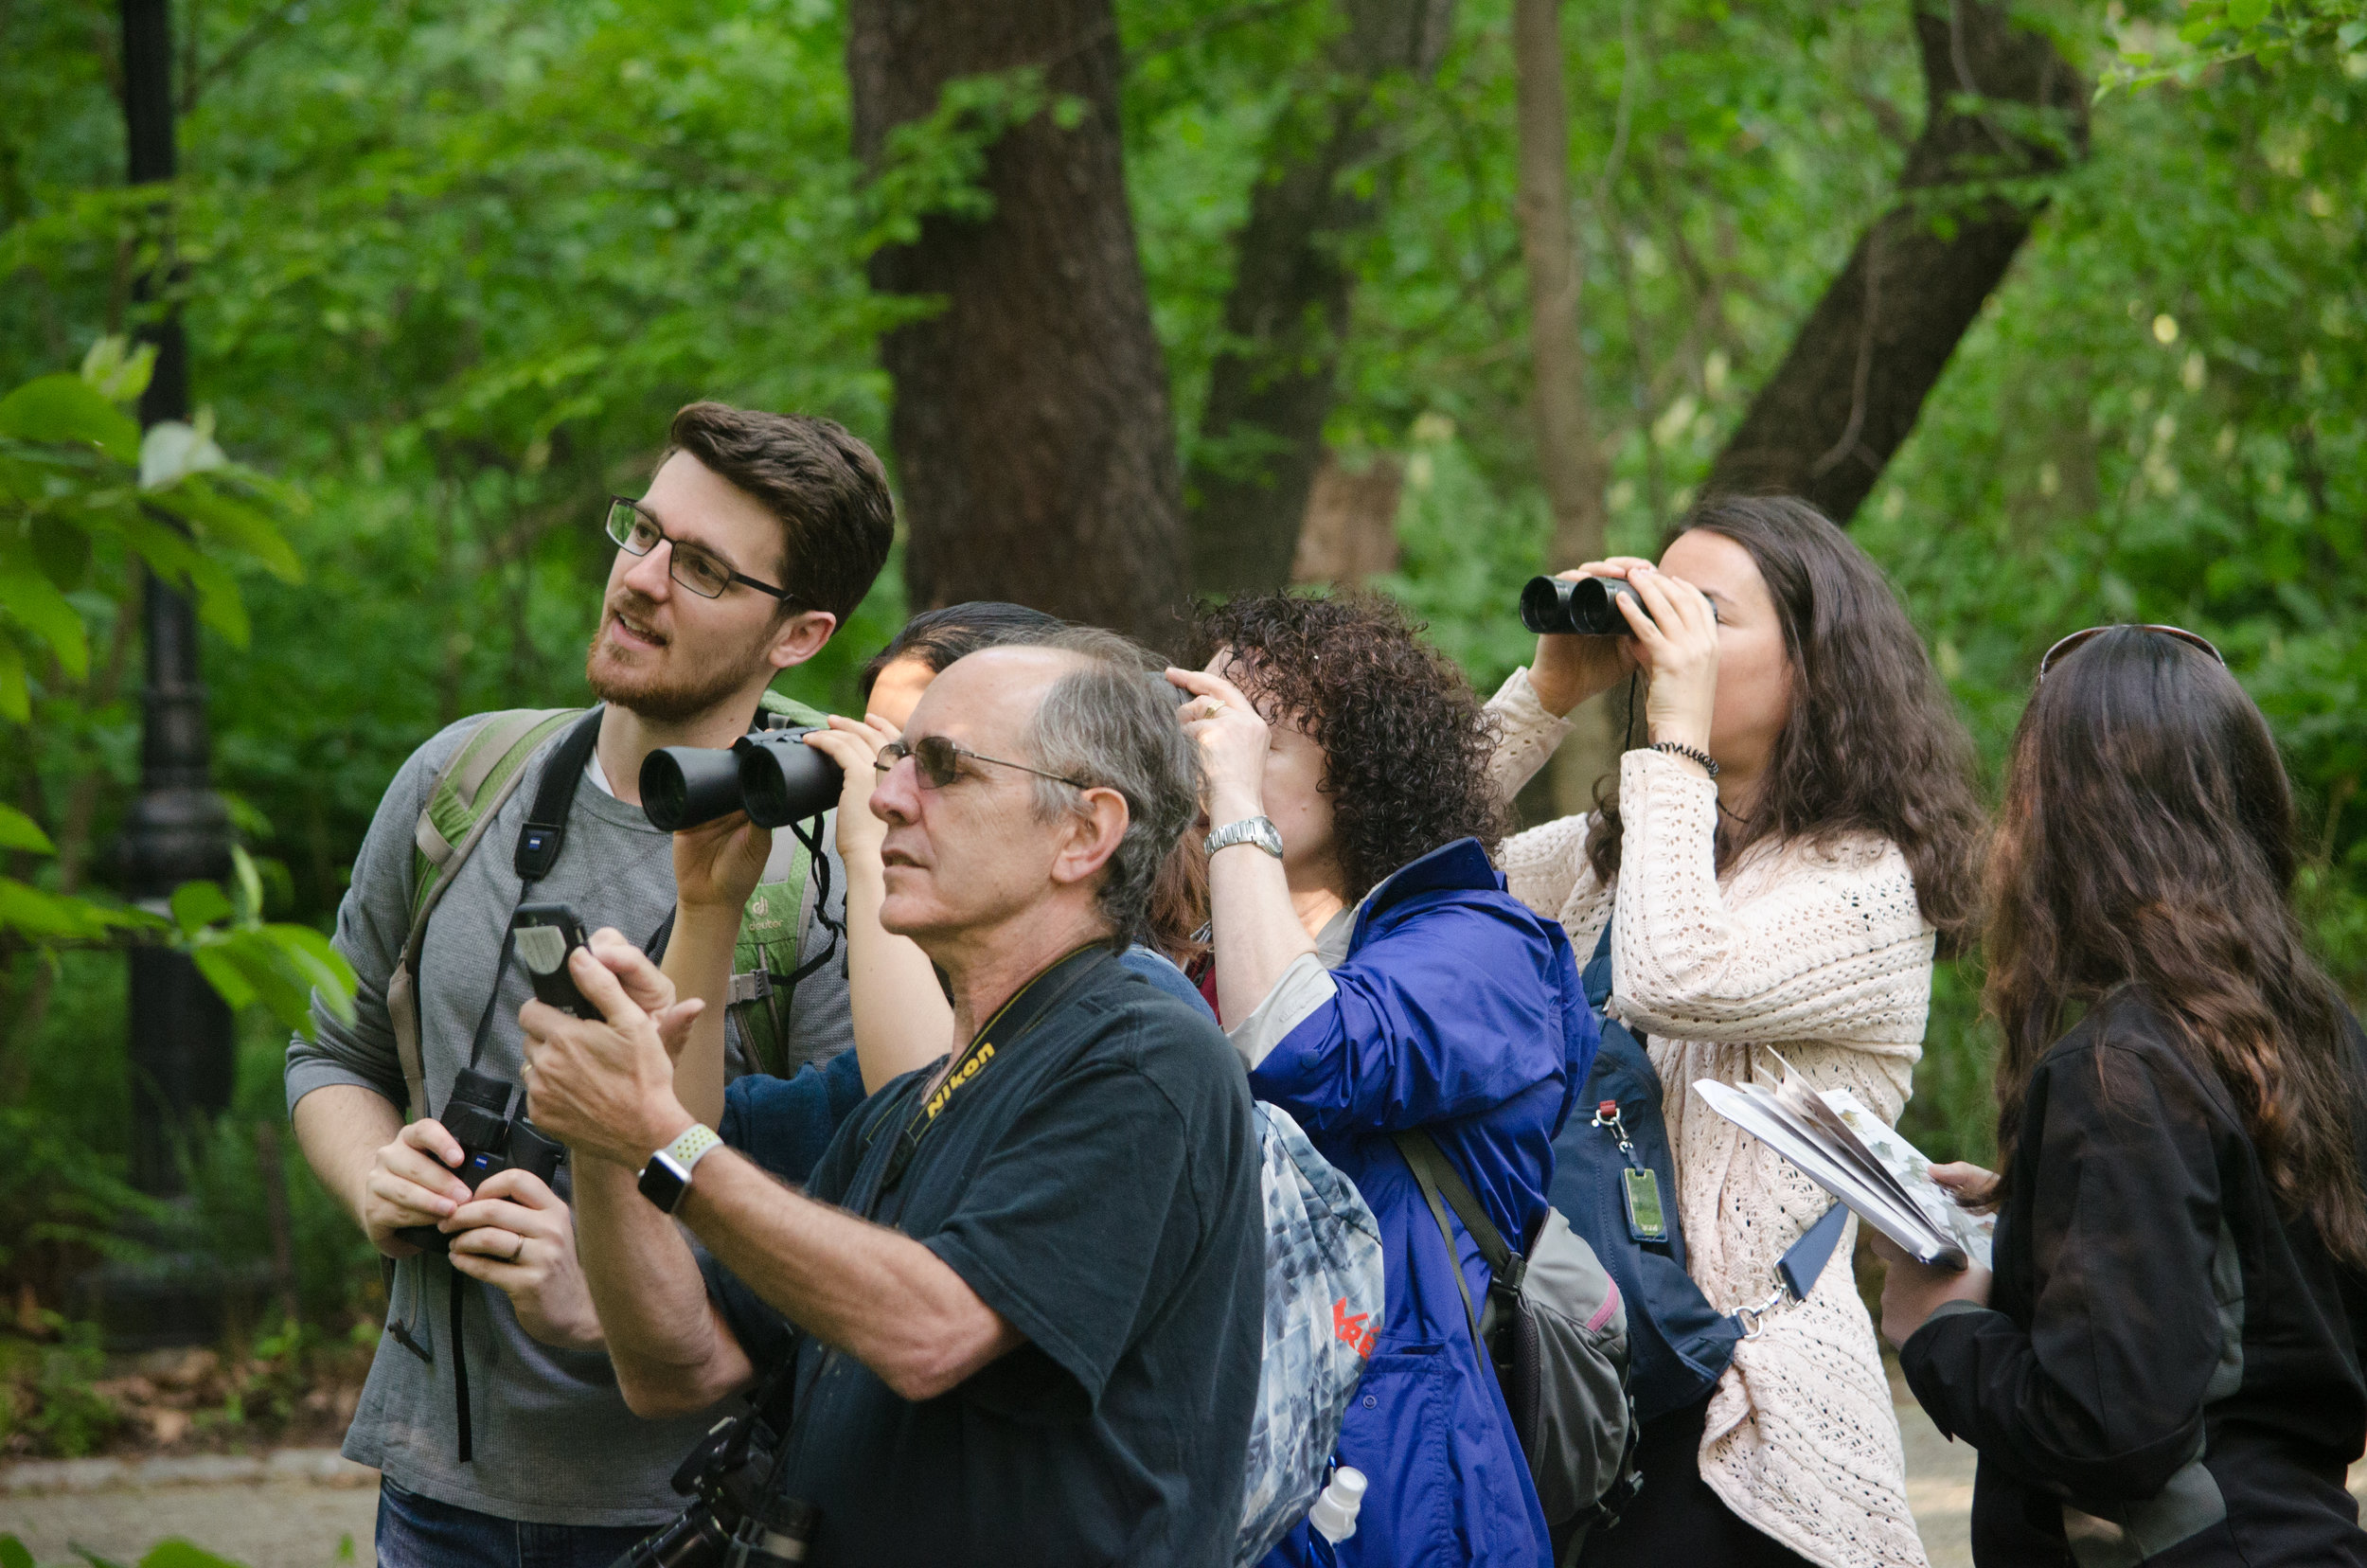 Spring Birding in Central Park with evolutionary biologist Spencer Galen - May 20